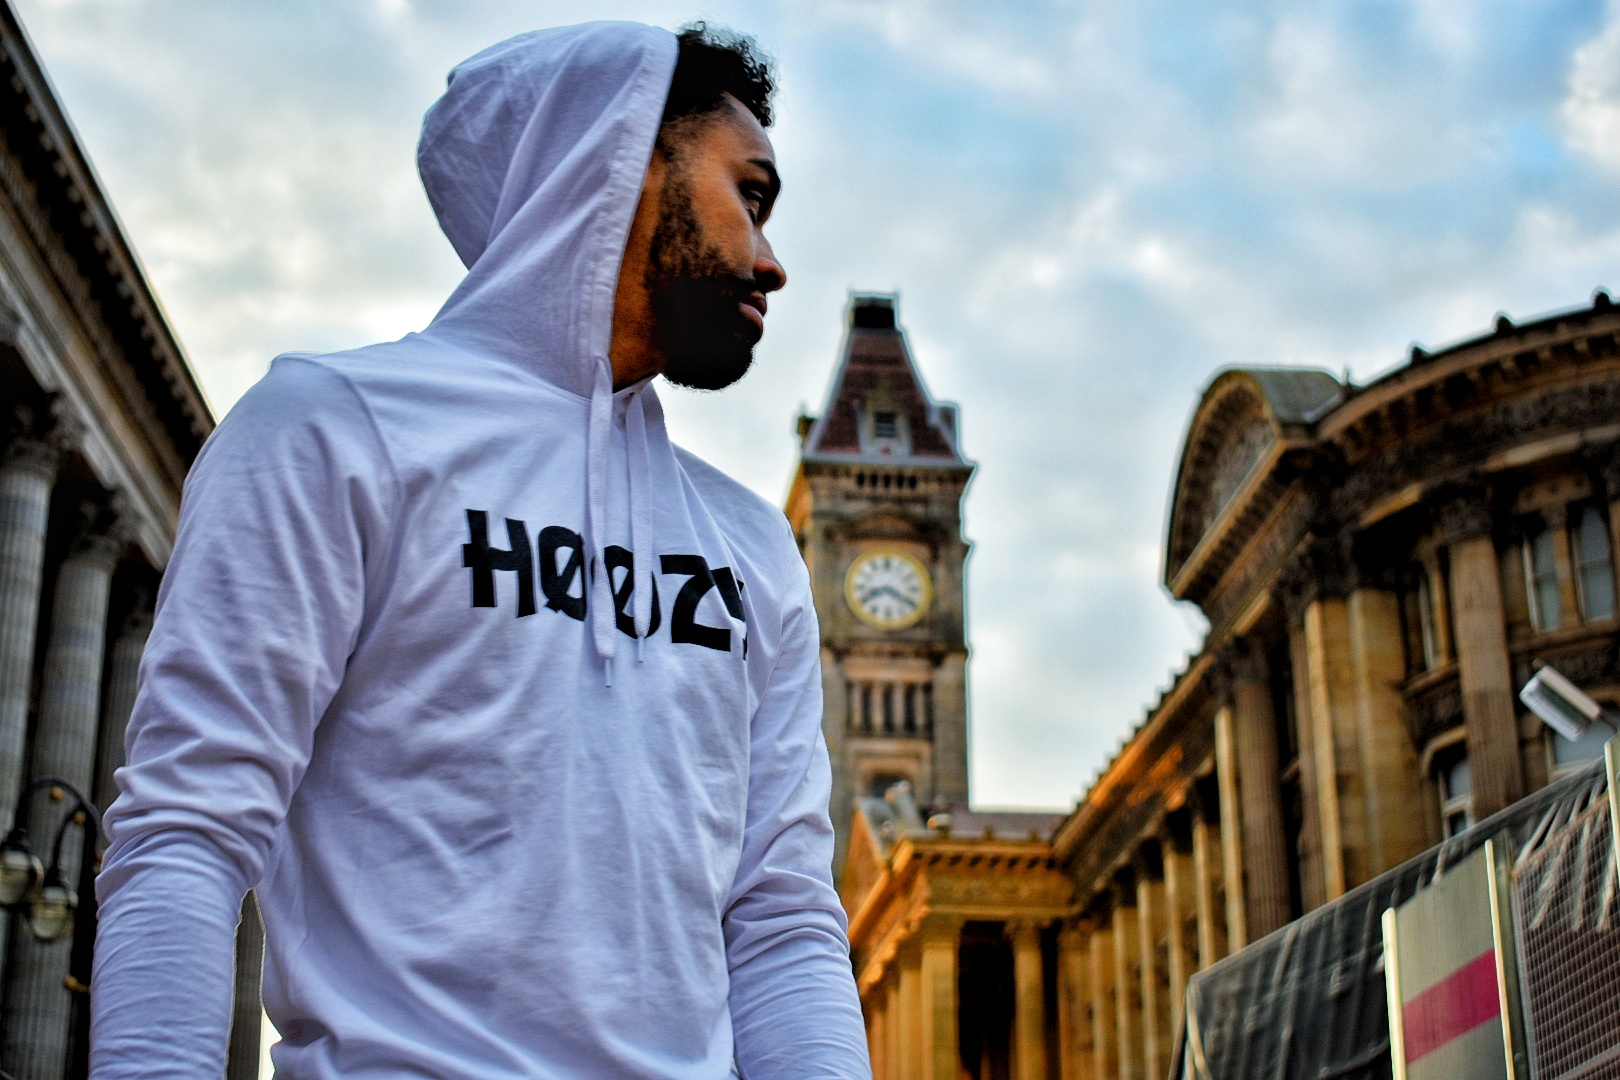 Victoria Square Birmingham Hoozy official hooded tee